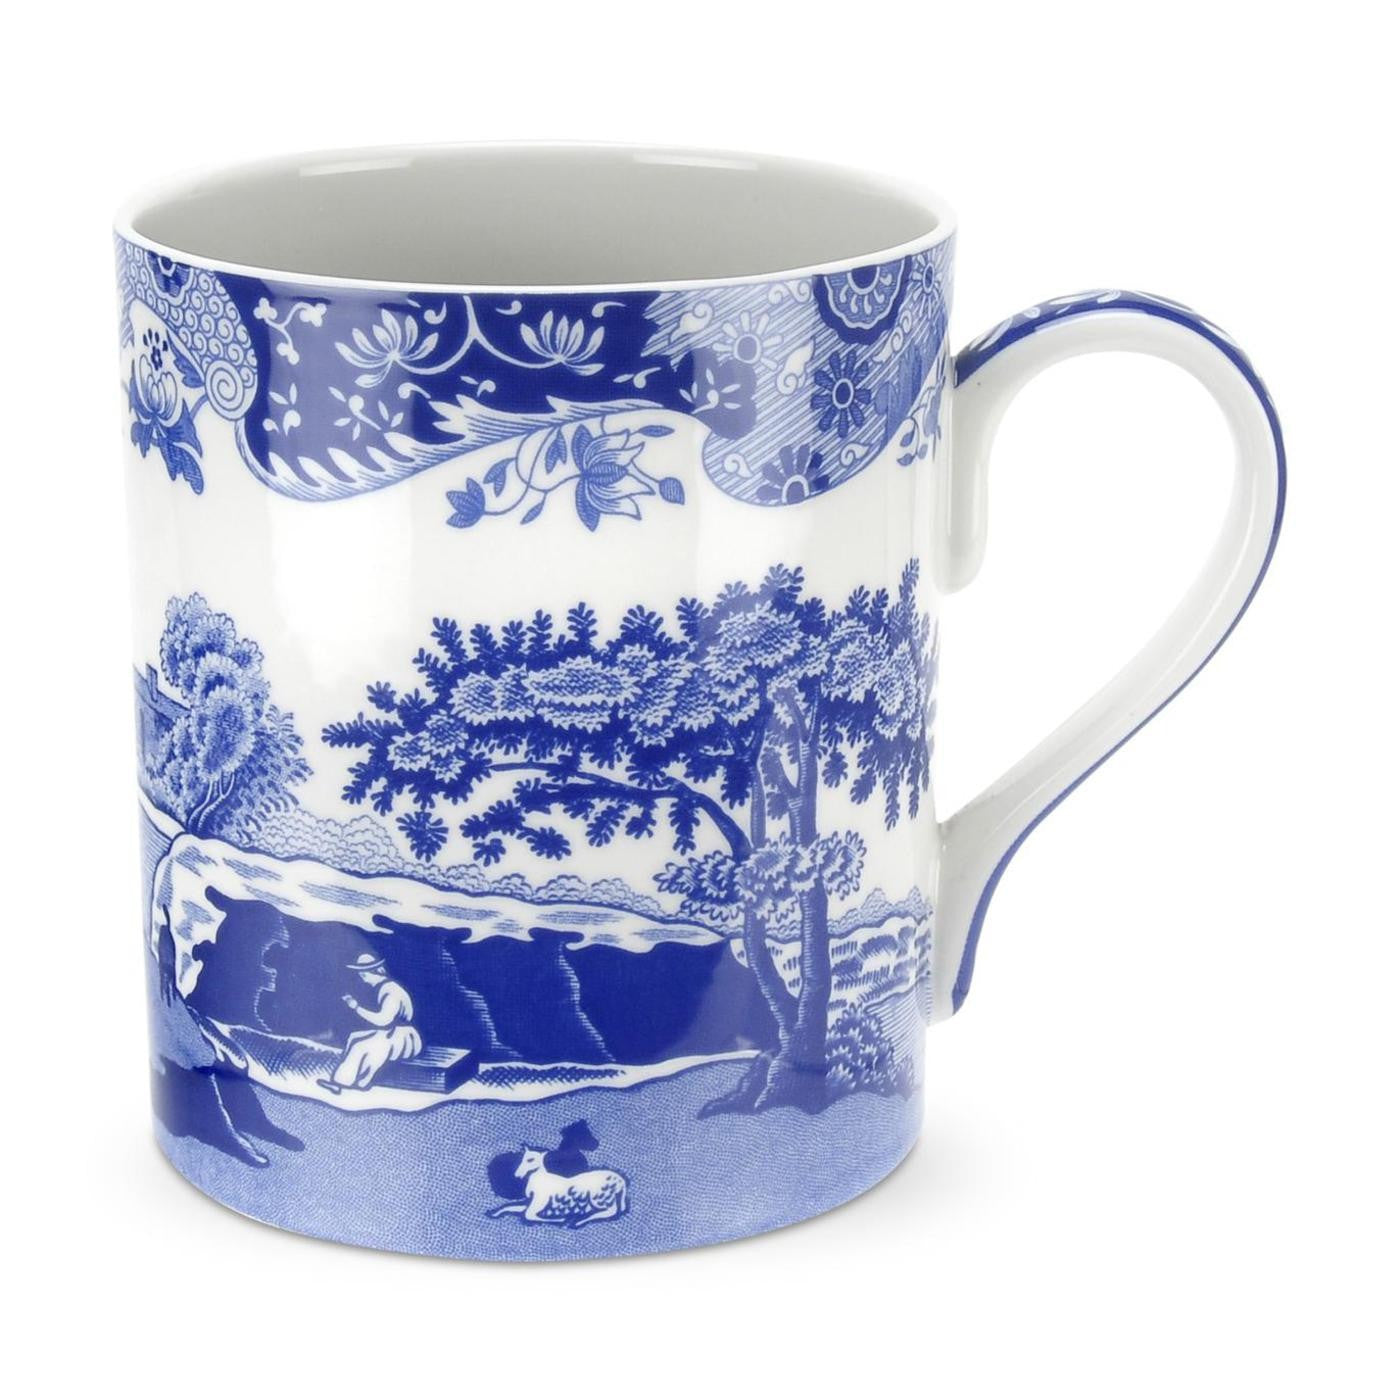 Spode Blue Italian Mug Set of 4